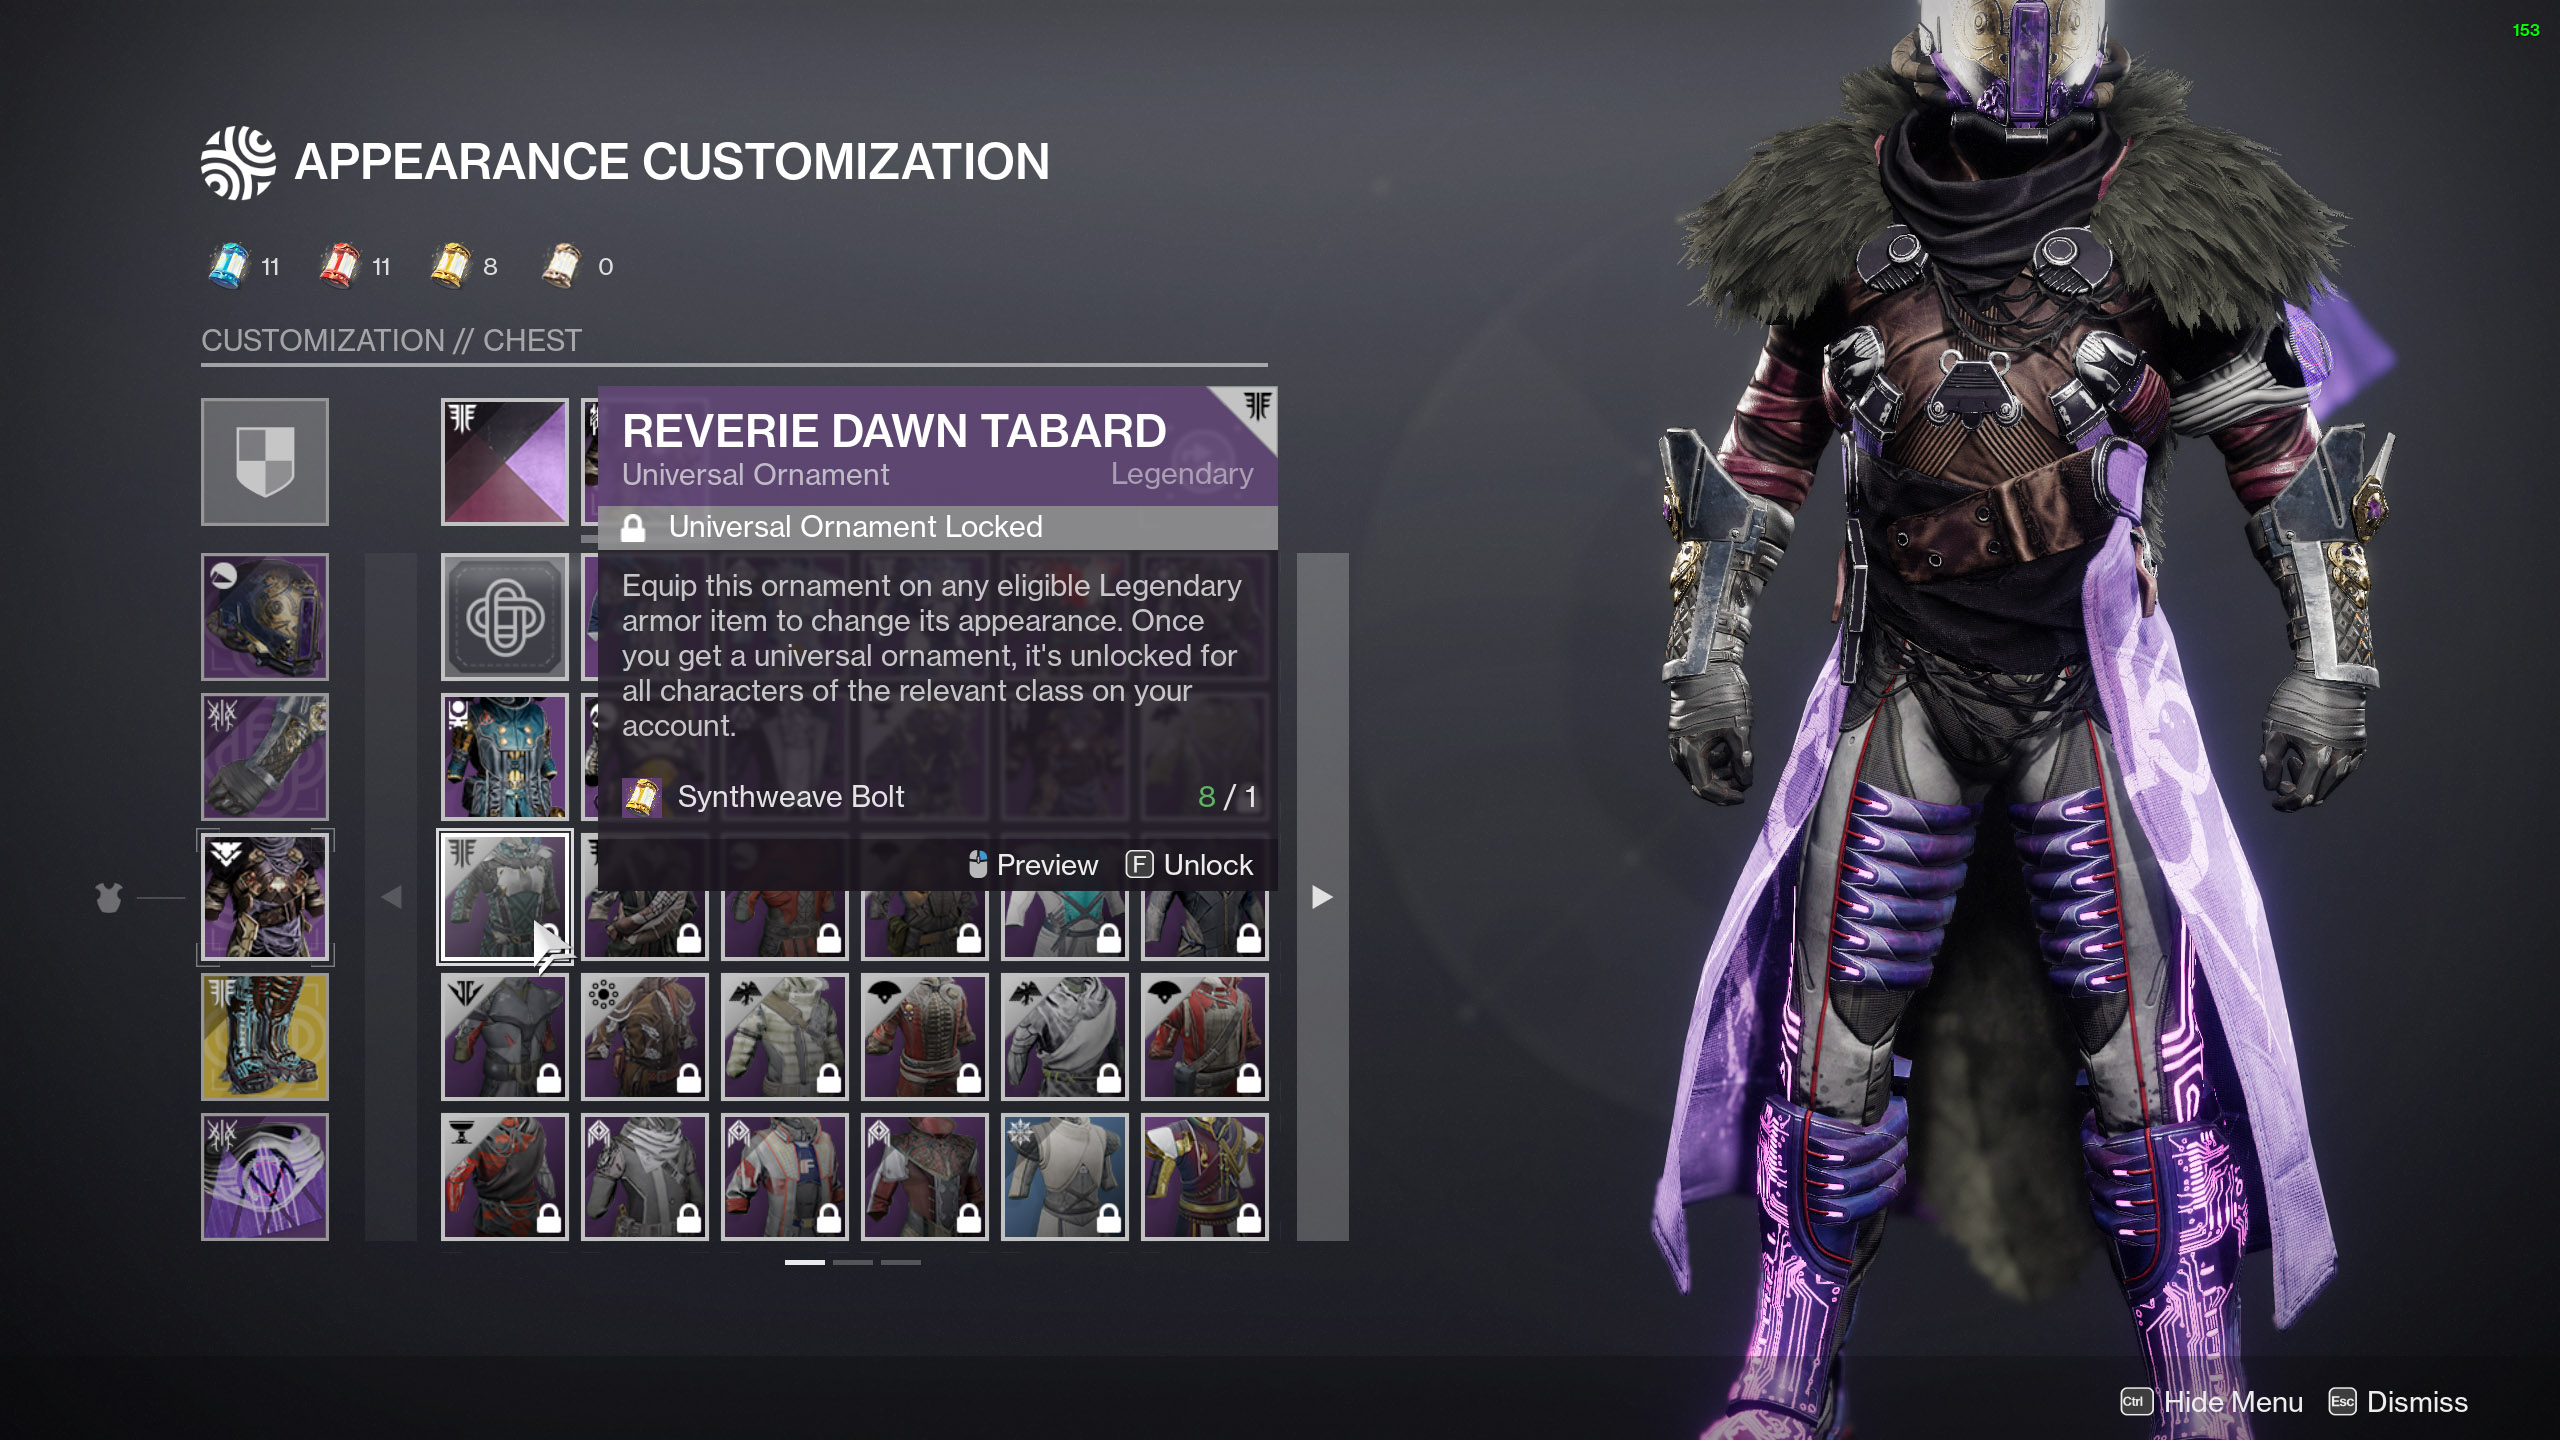 destiny 2 tying it all together appearance customization